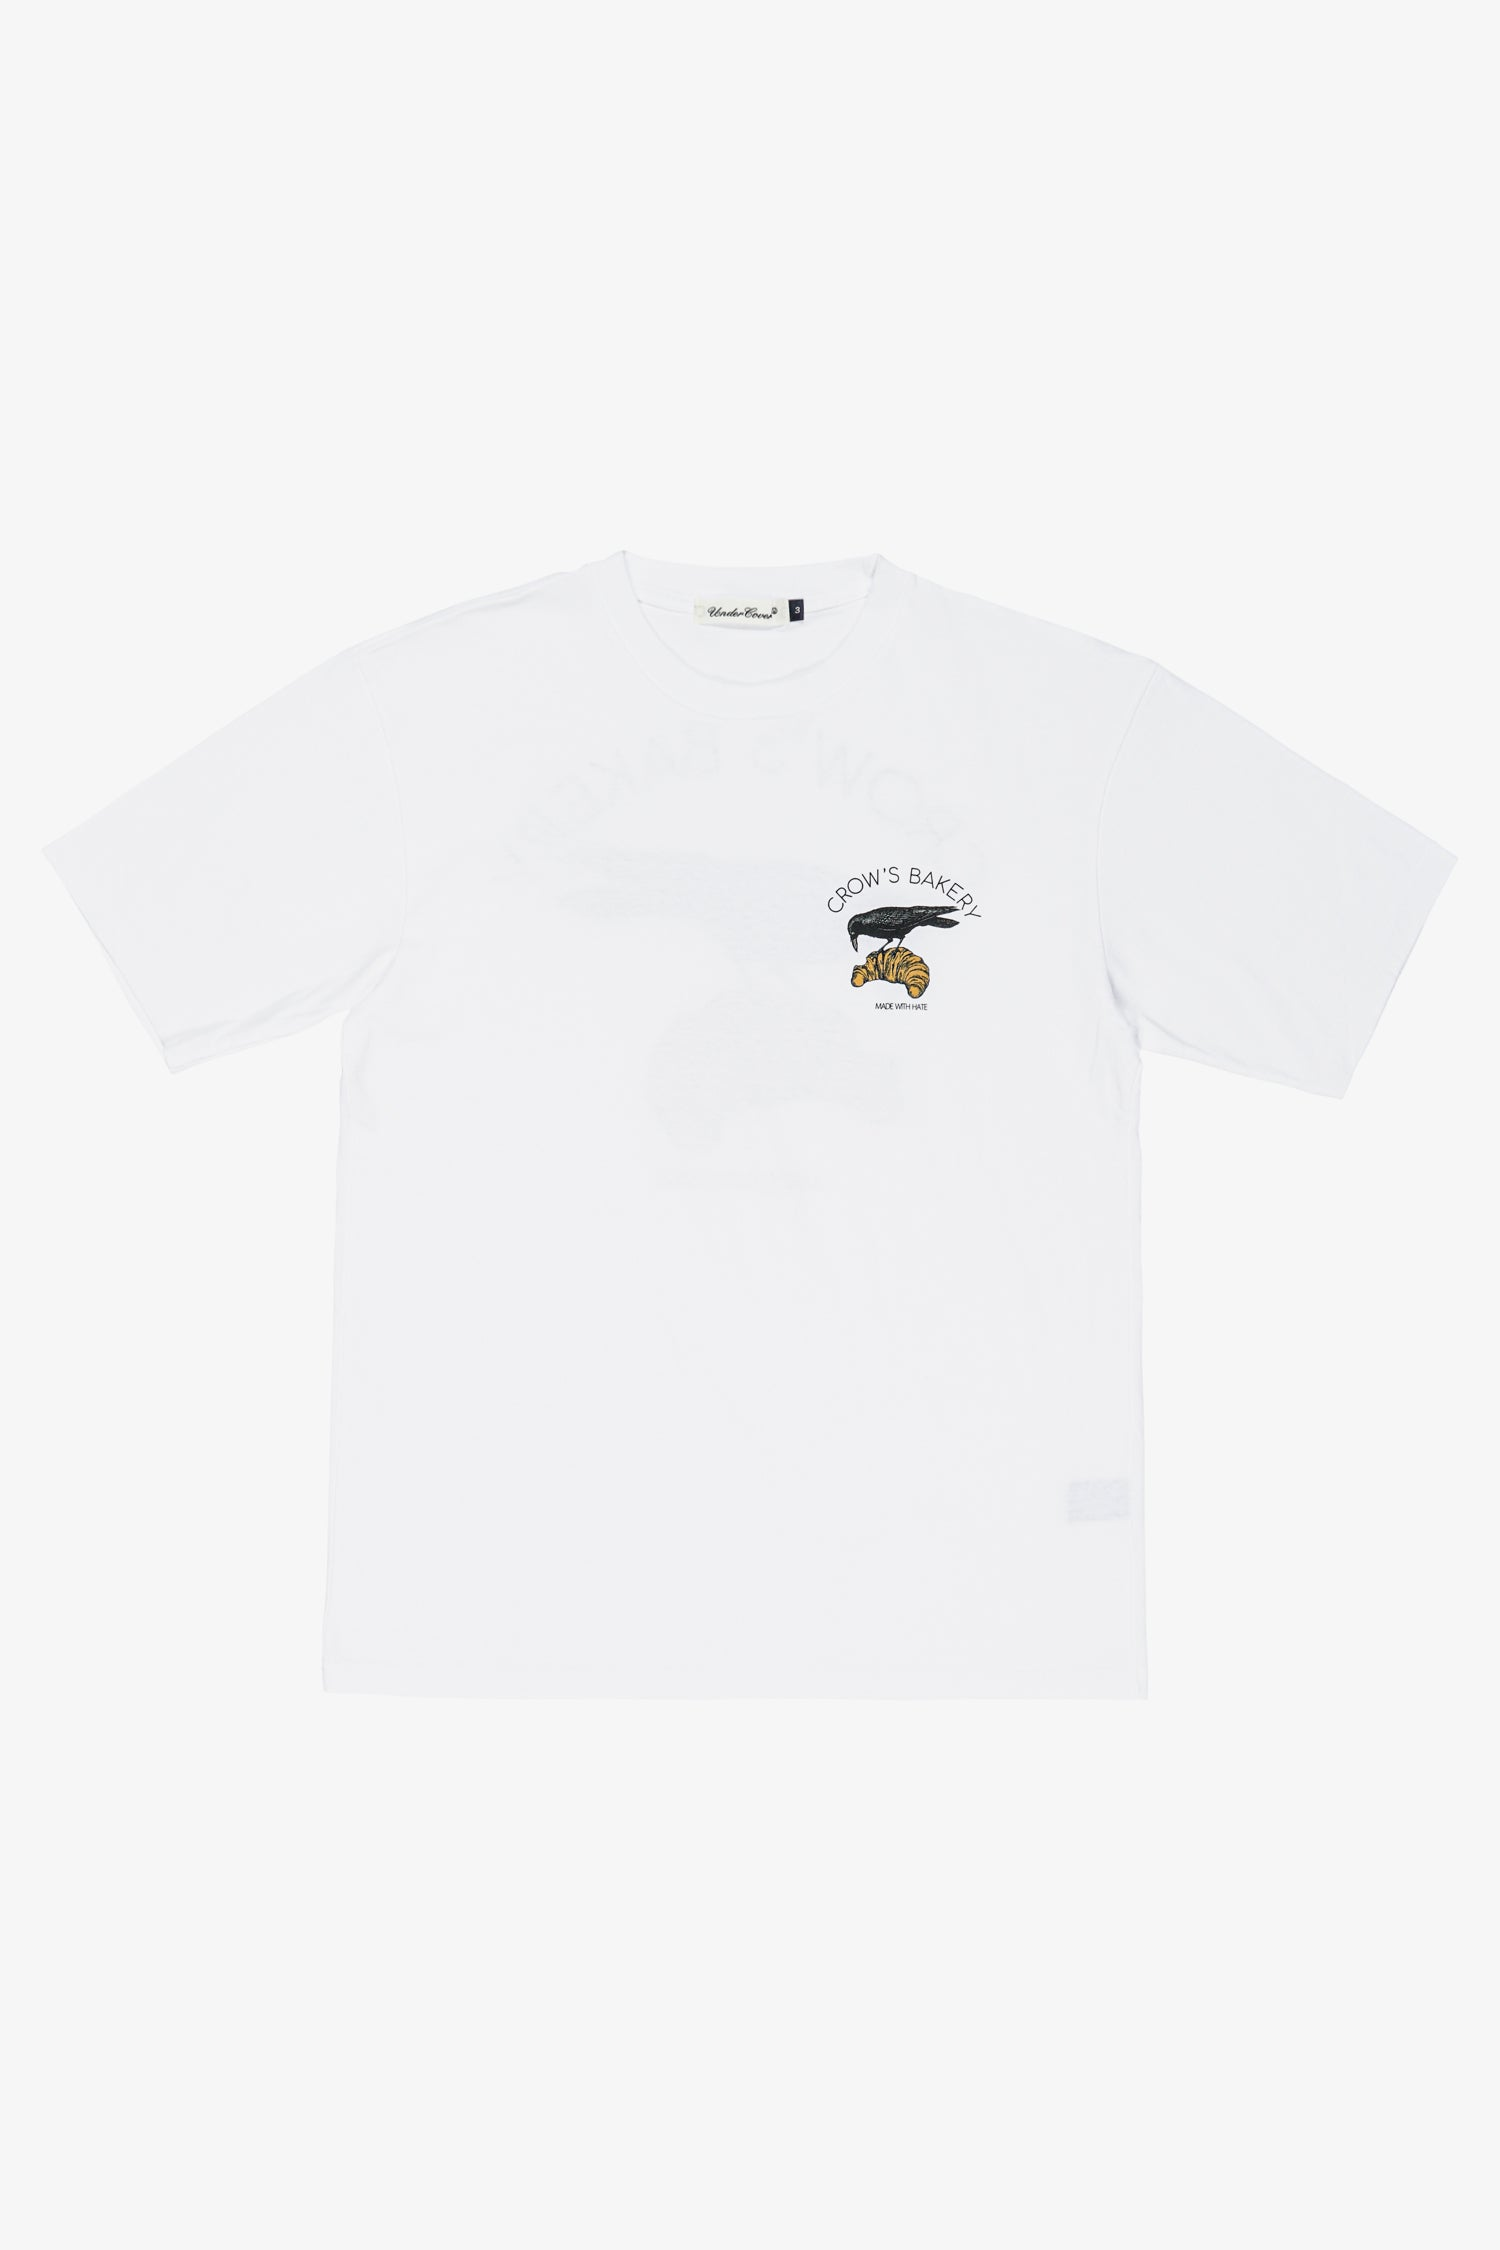 Selectshop FRAME - UNDERCOVER Crow's Bakery Tee T-Shirt Dubai